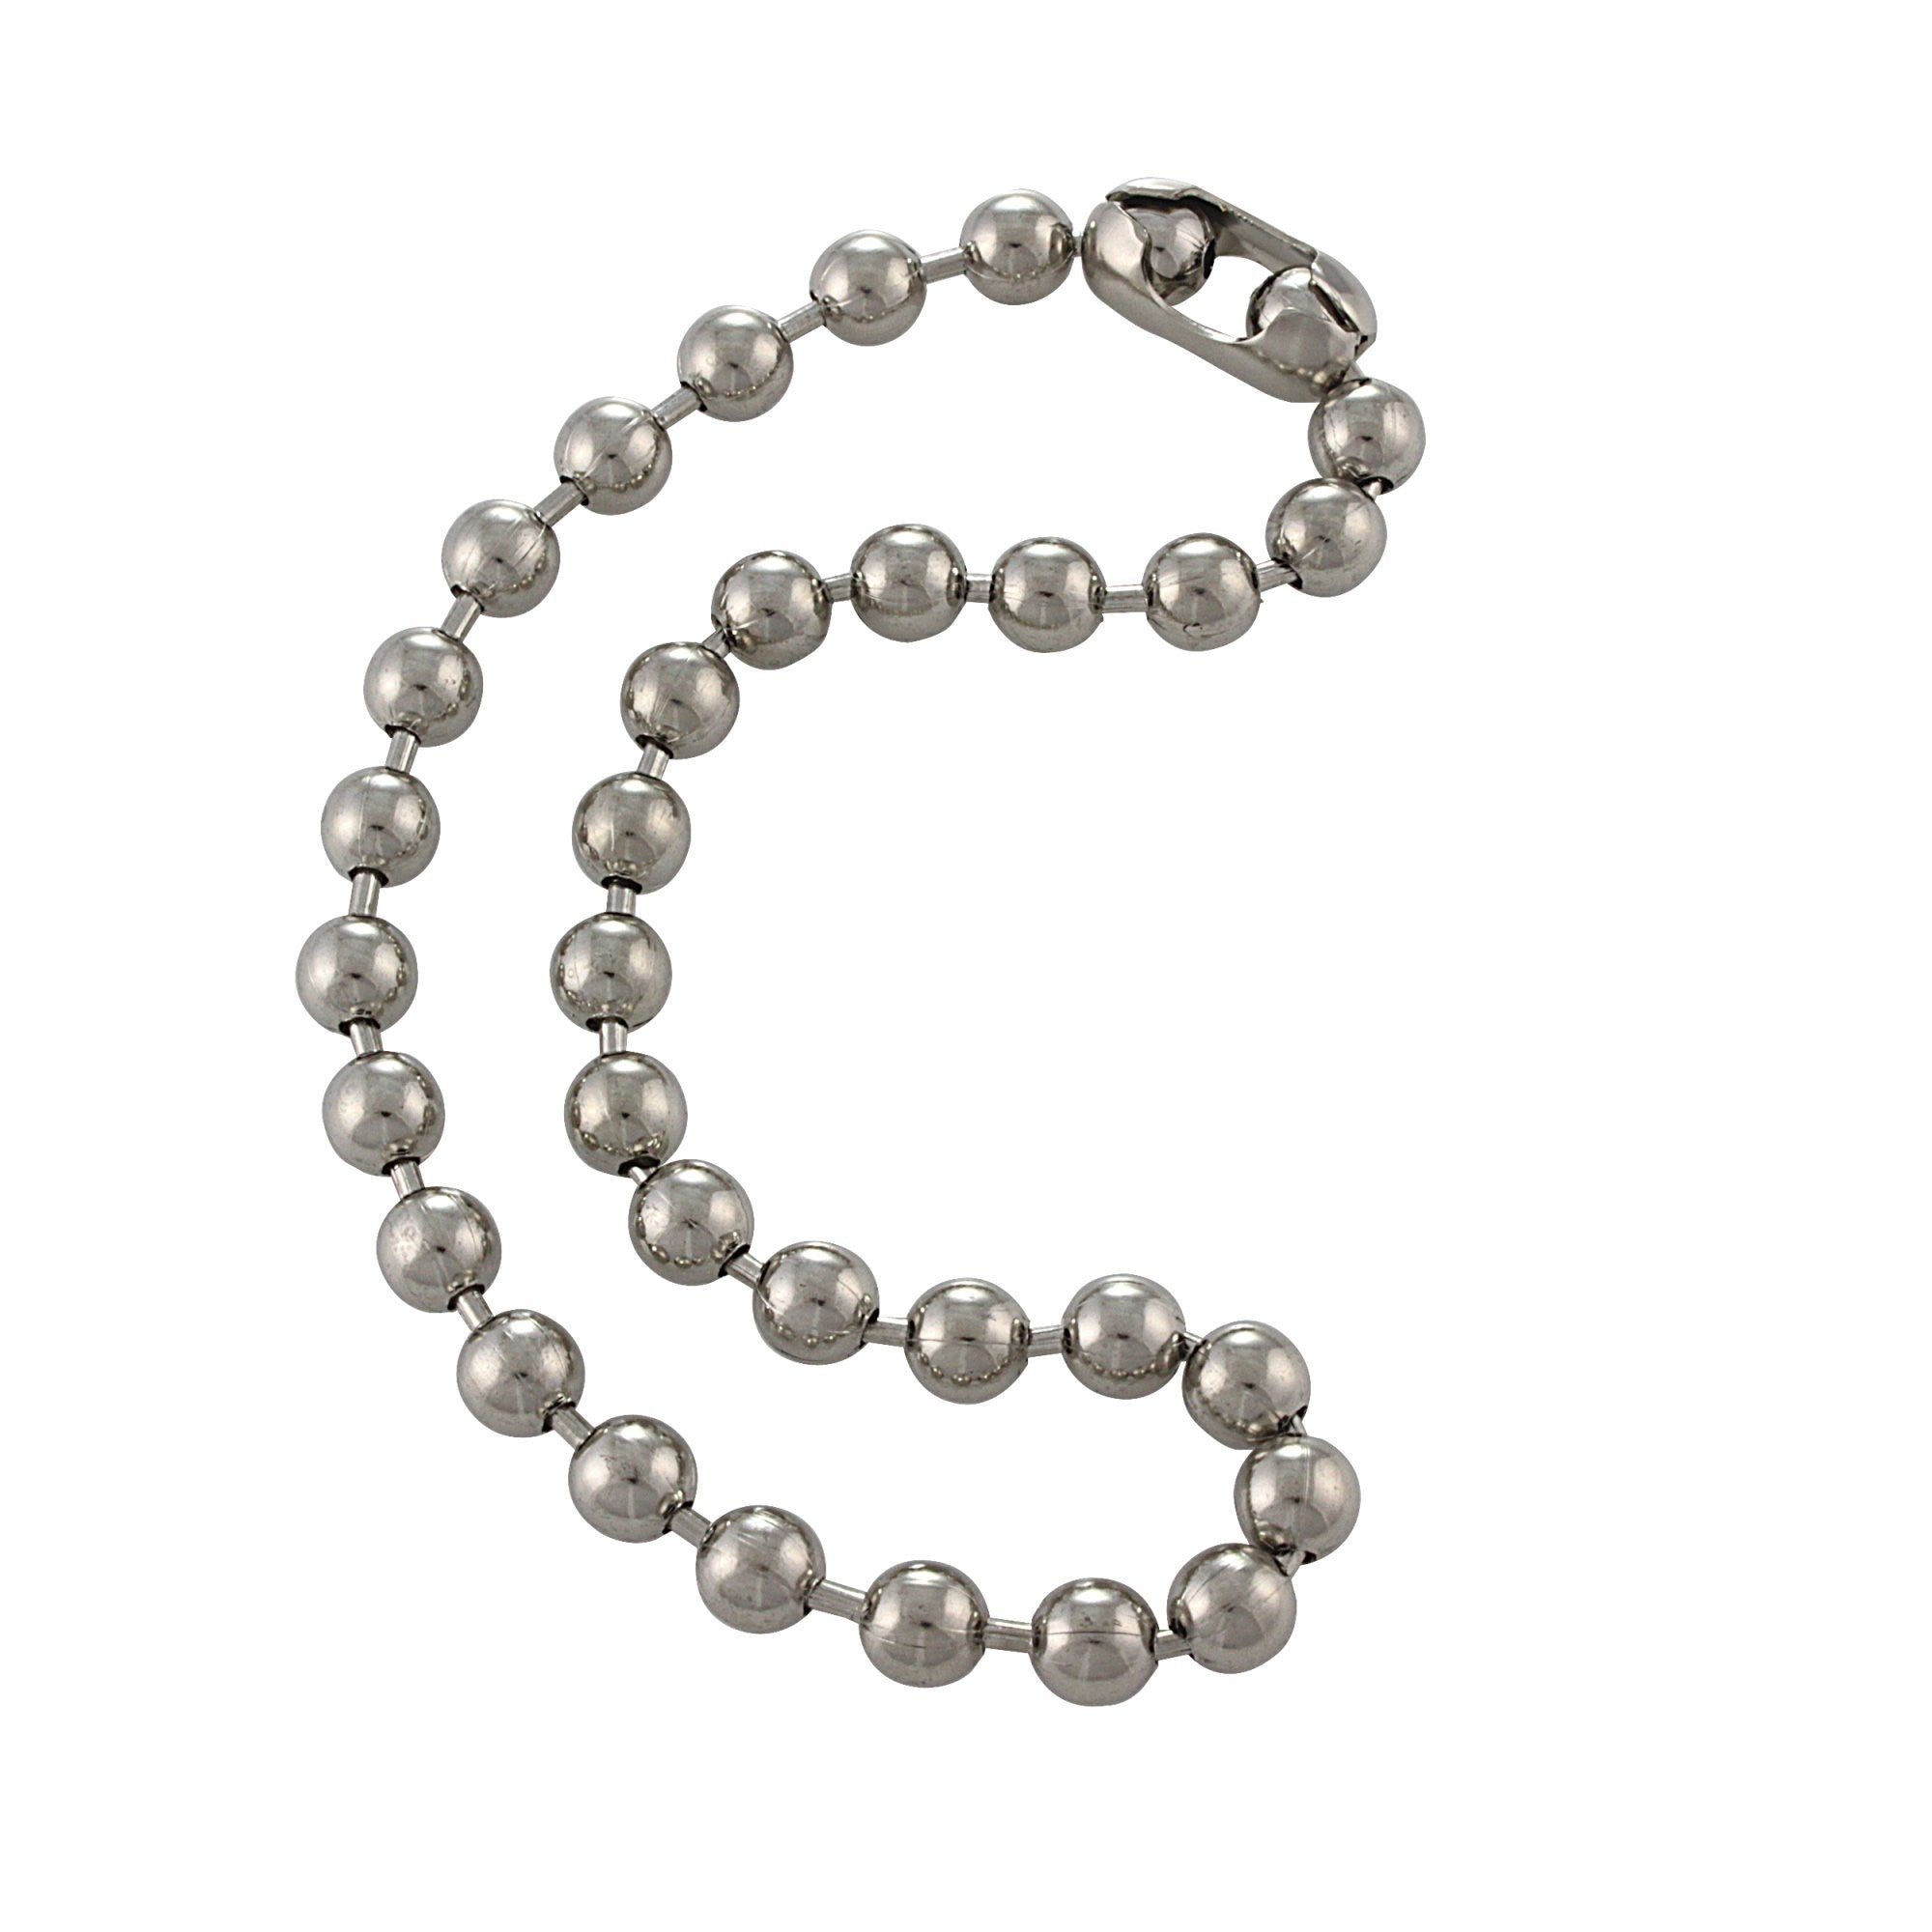 jewelry silver chain supplies chains women men necklace rollo sterling ball curb p figaro